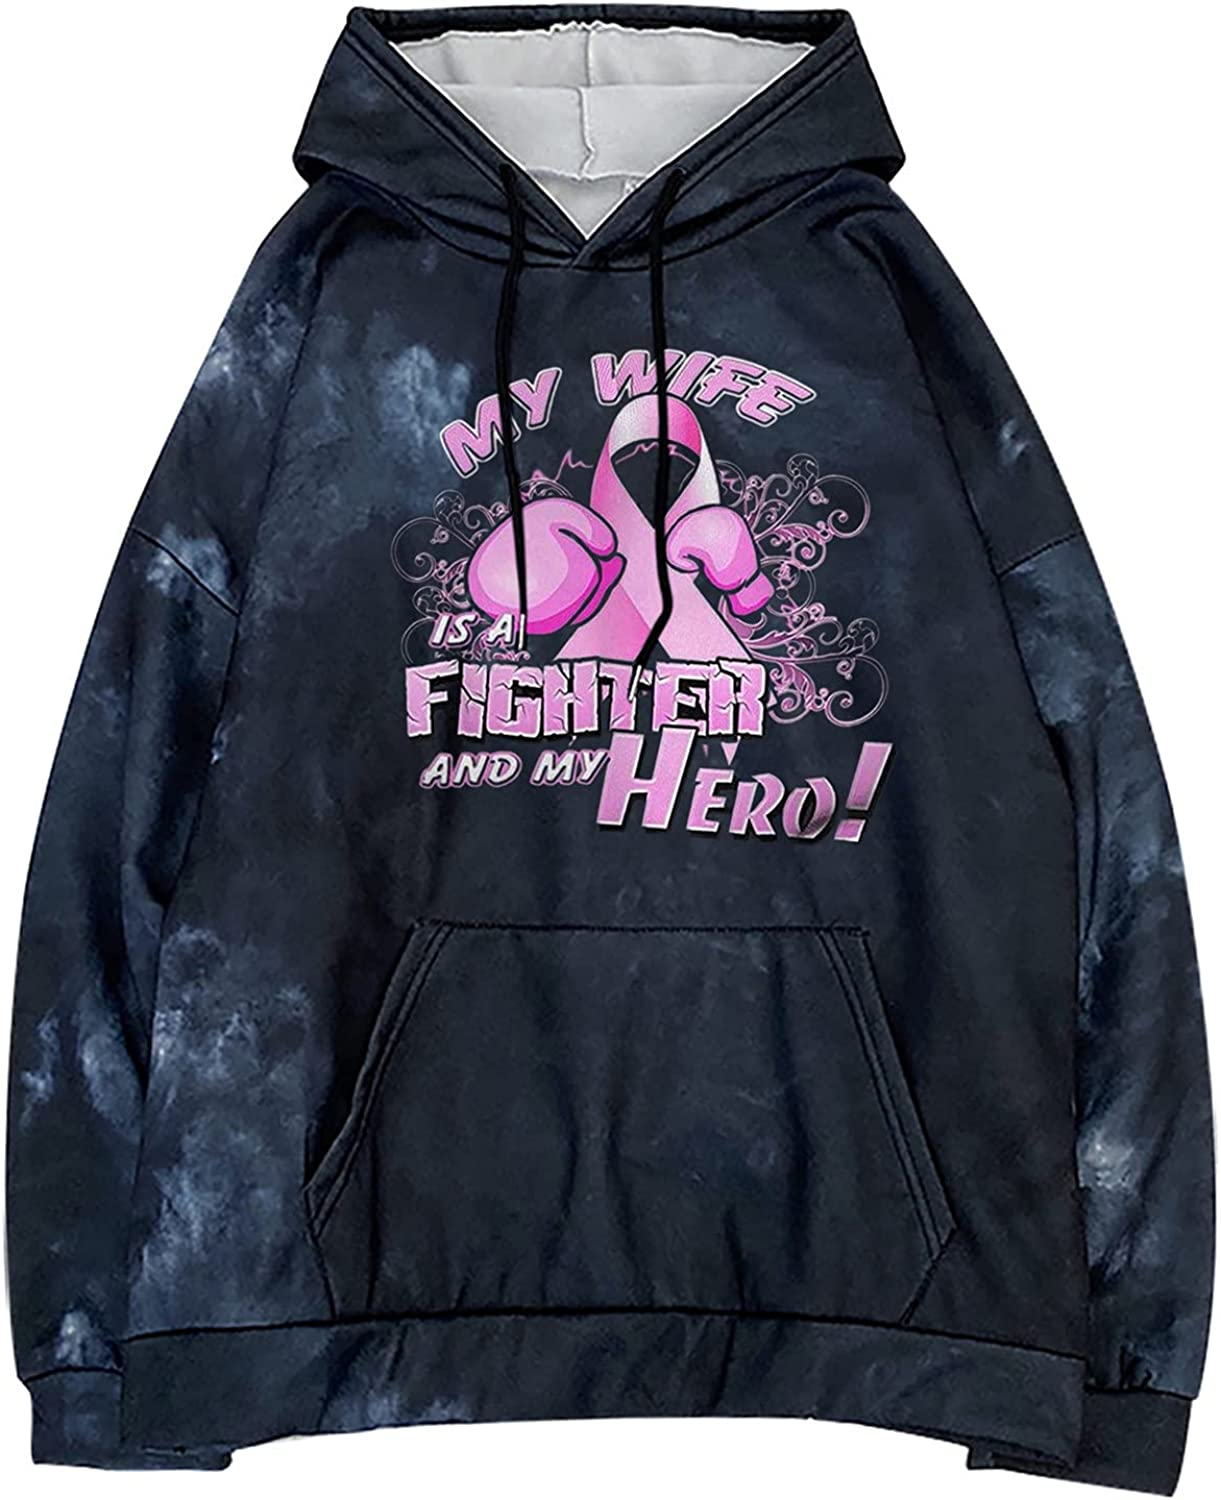 Womens Graphic Hooded Sweatshirts, Plus Size Sunflower Print Casual Hoodies Tops Pockets Teens Girls Y2K Pullover Blouse